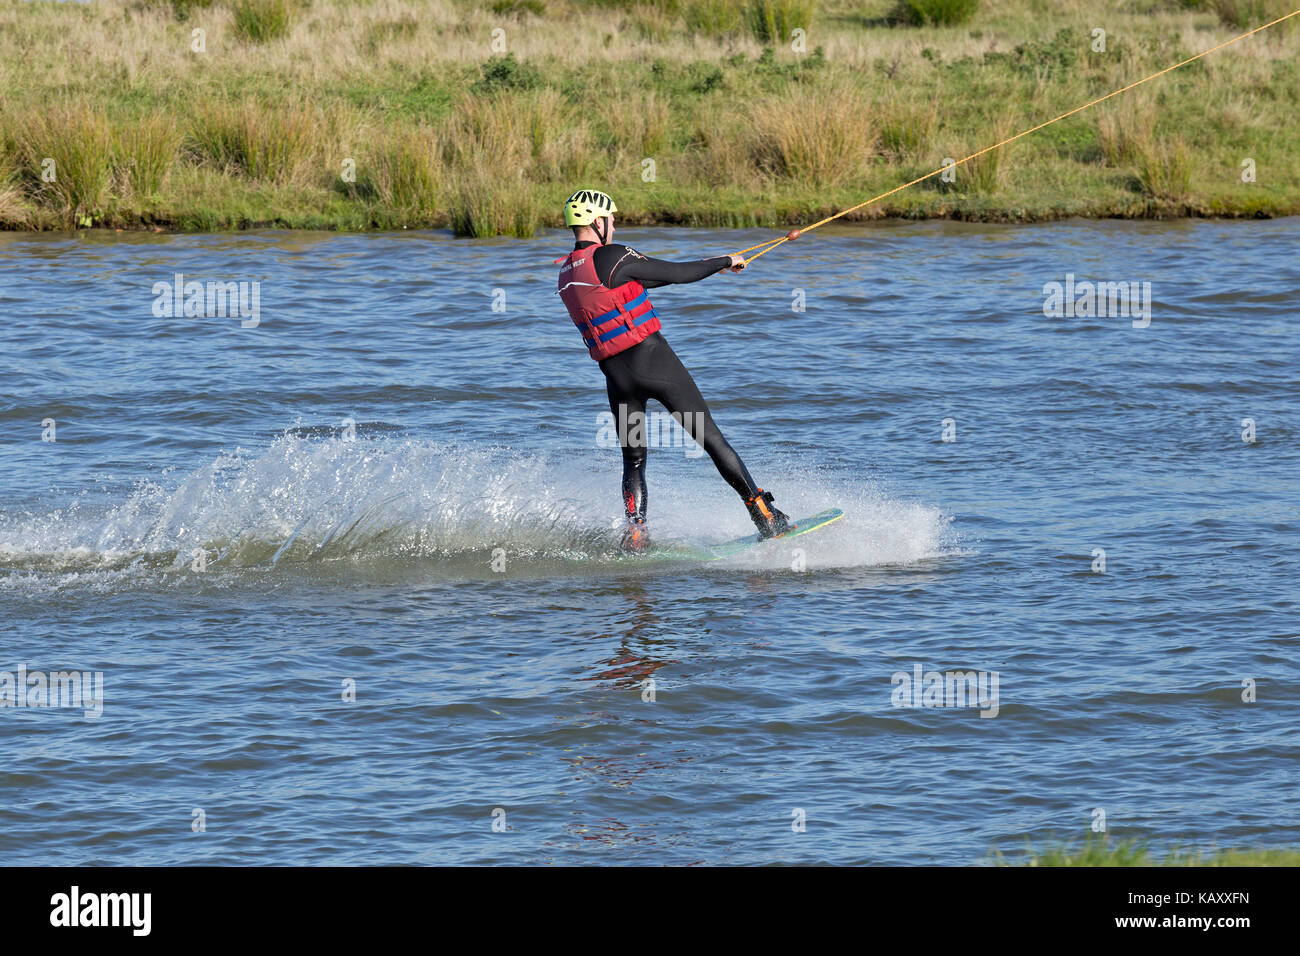 Wakepark, Baltic Sea Spa Damp, Schleswig-Holstein, Germany - Stock Image